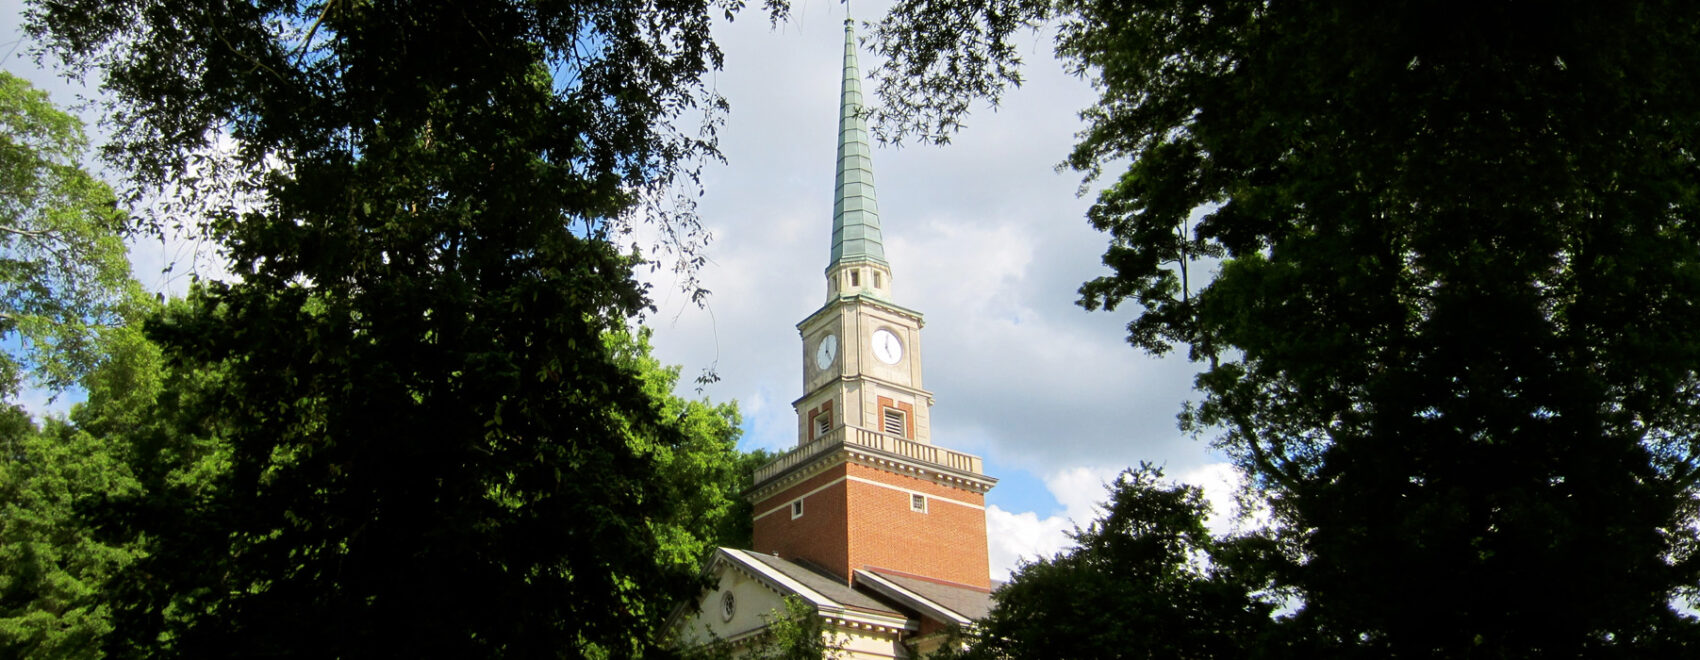 Church steeple at Davidson College